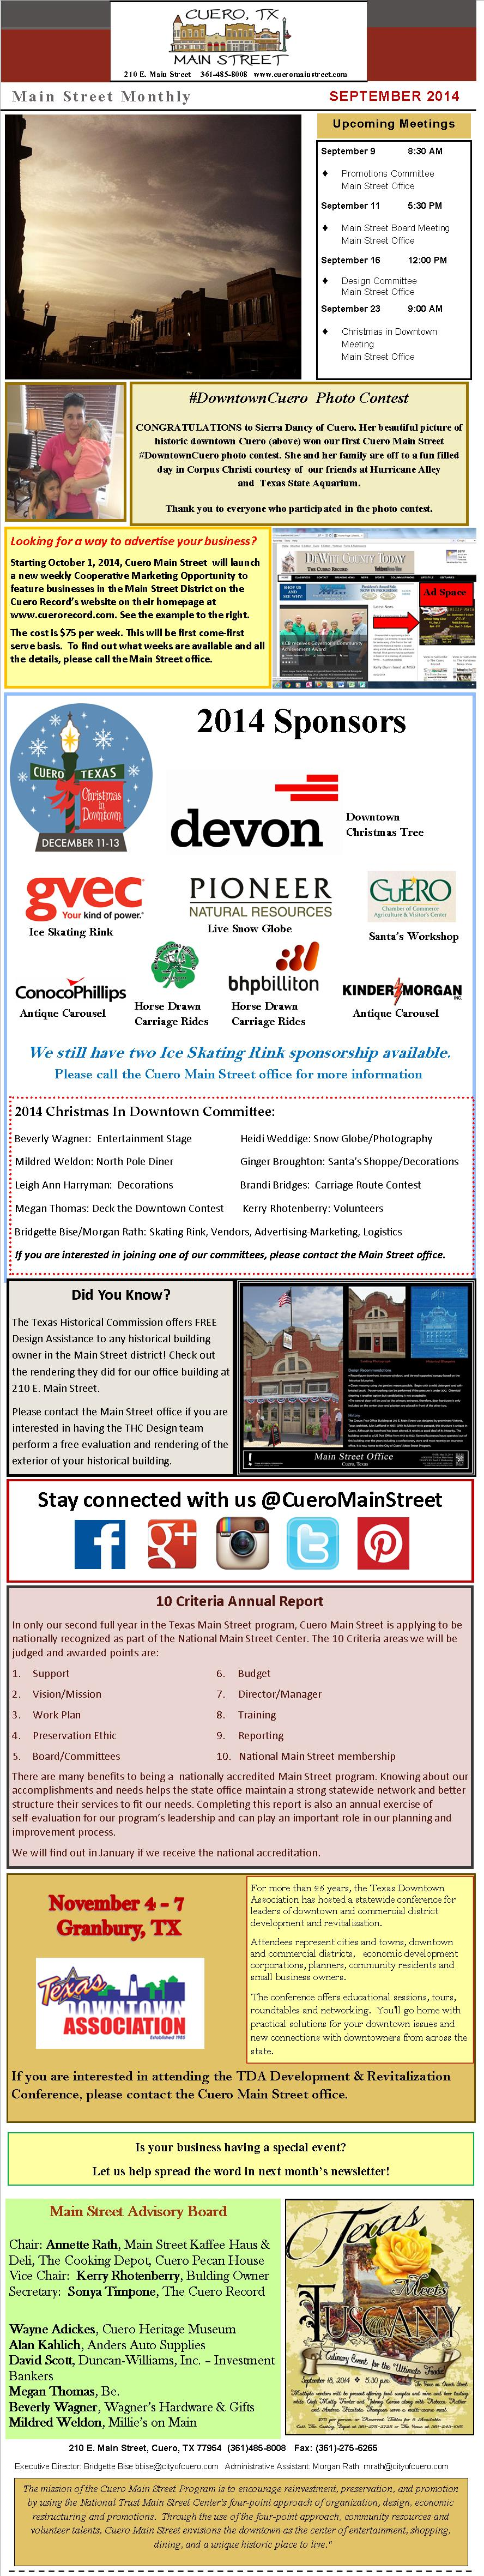 Our September Newsletter is now on our website. Check it out!! http://cueromainstreet.com/about-us/newsletters/